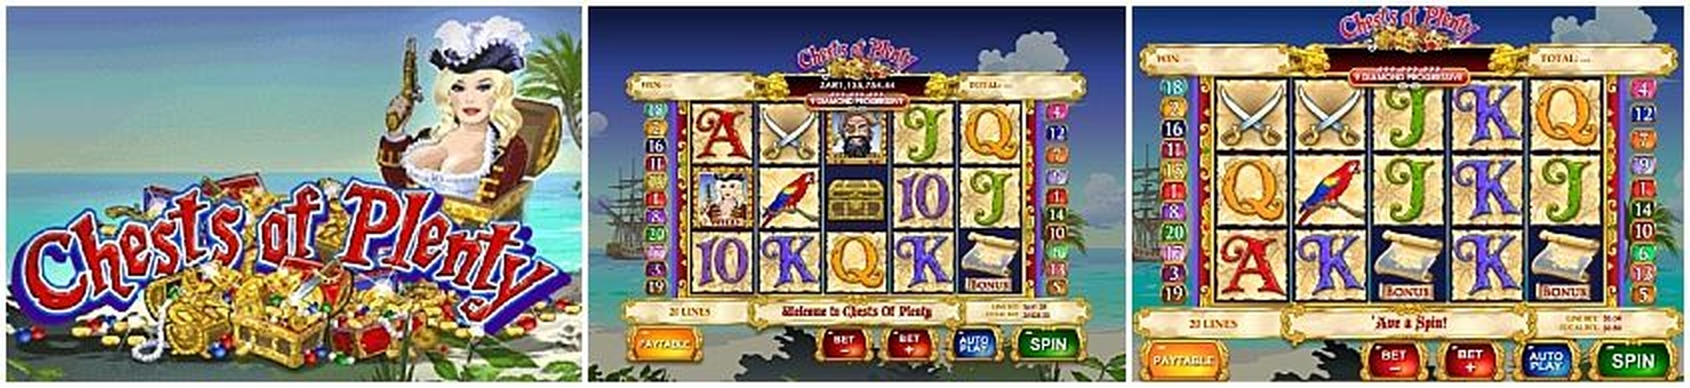 The Chests of Plenty Online Slot Demo Game by Ash Gaming